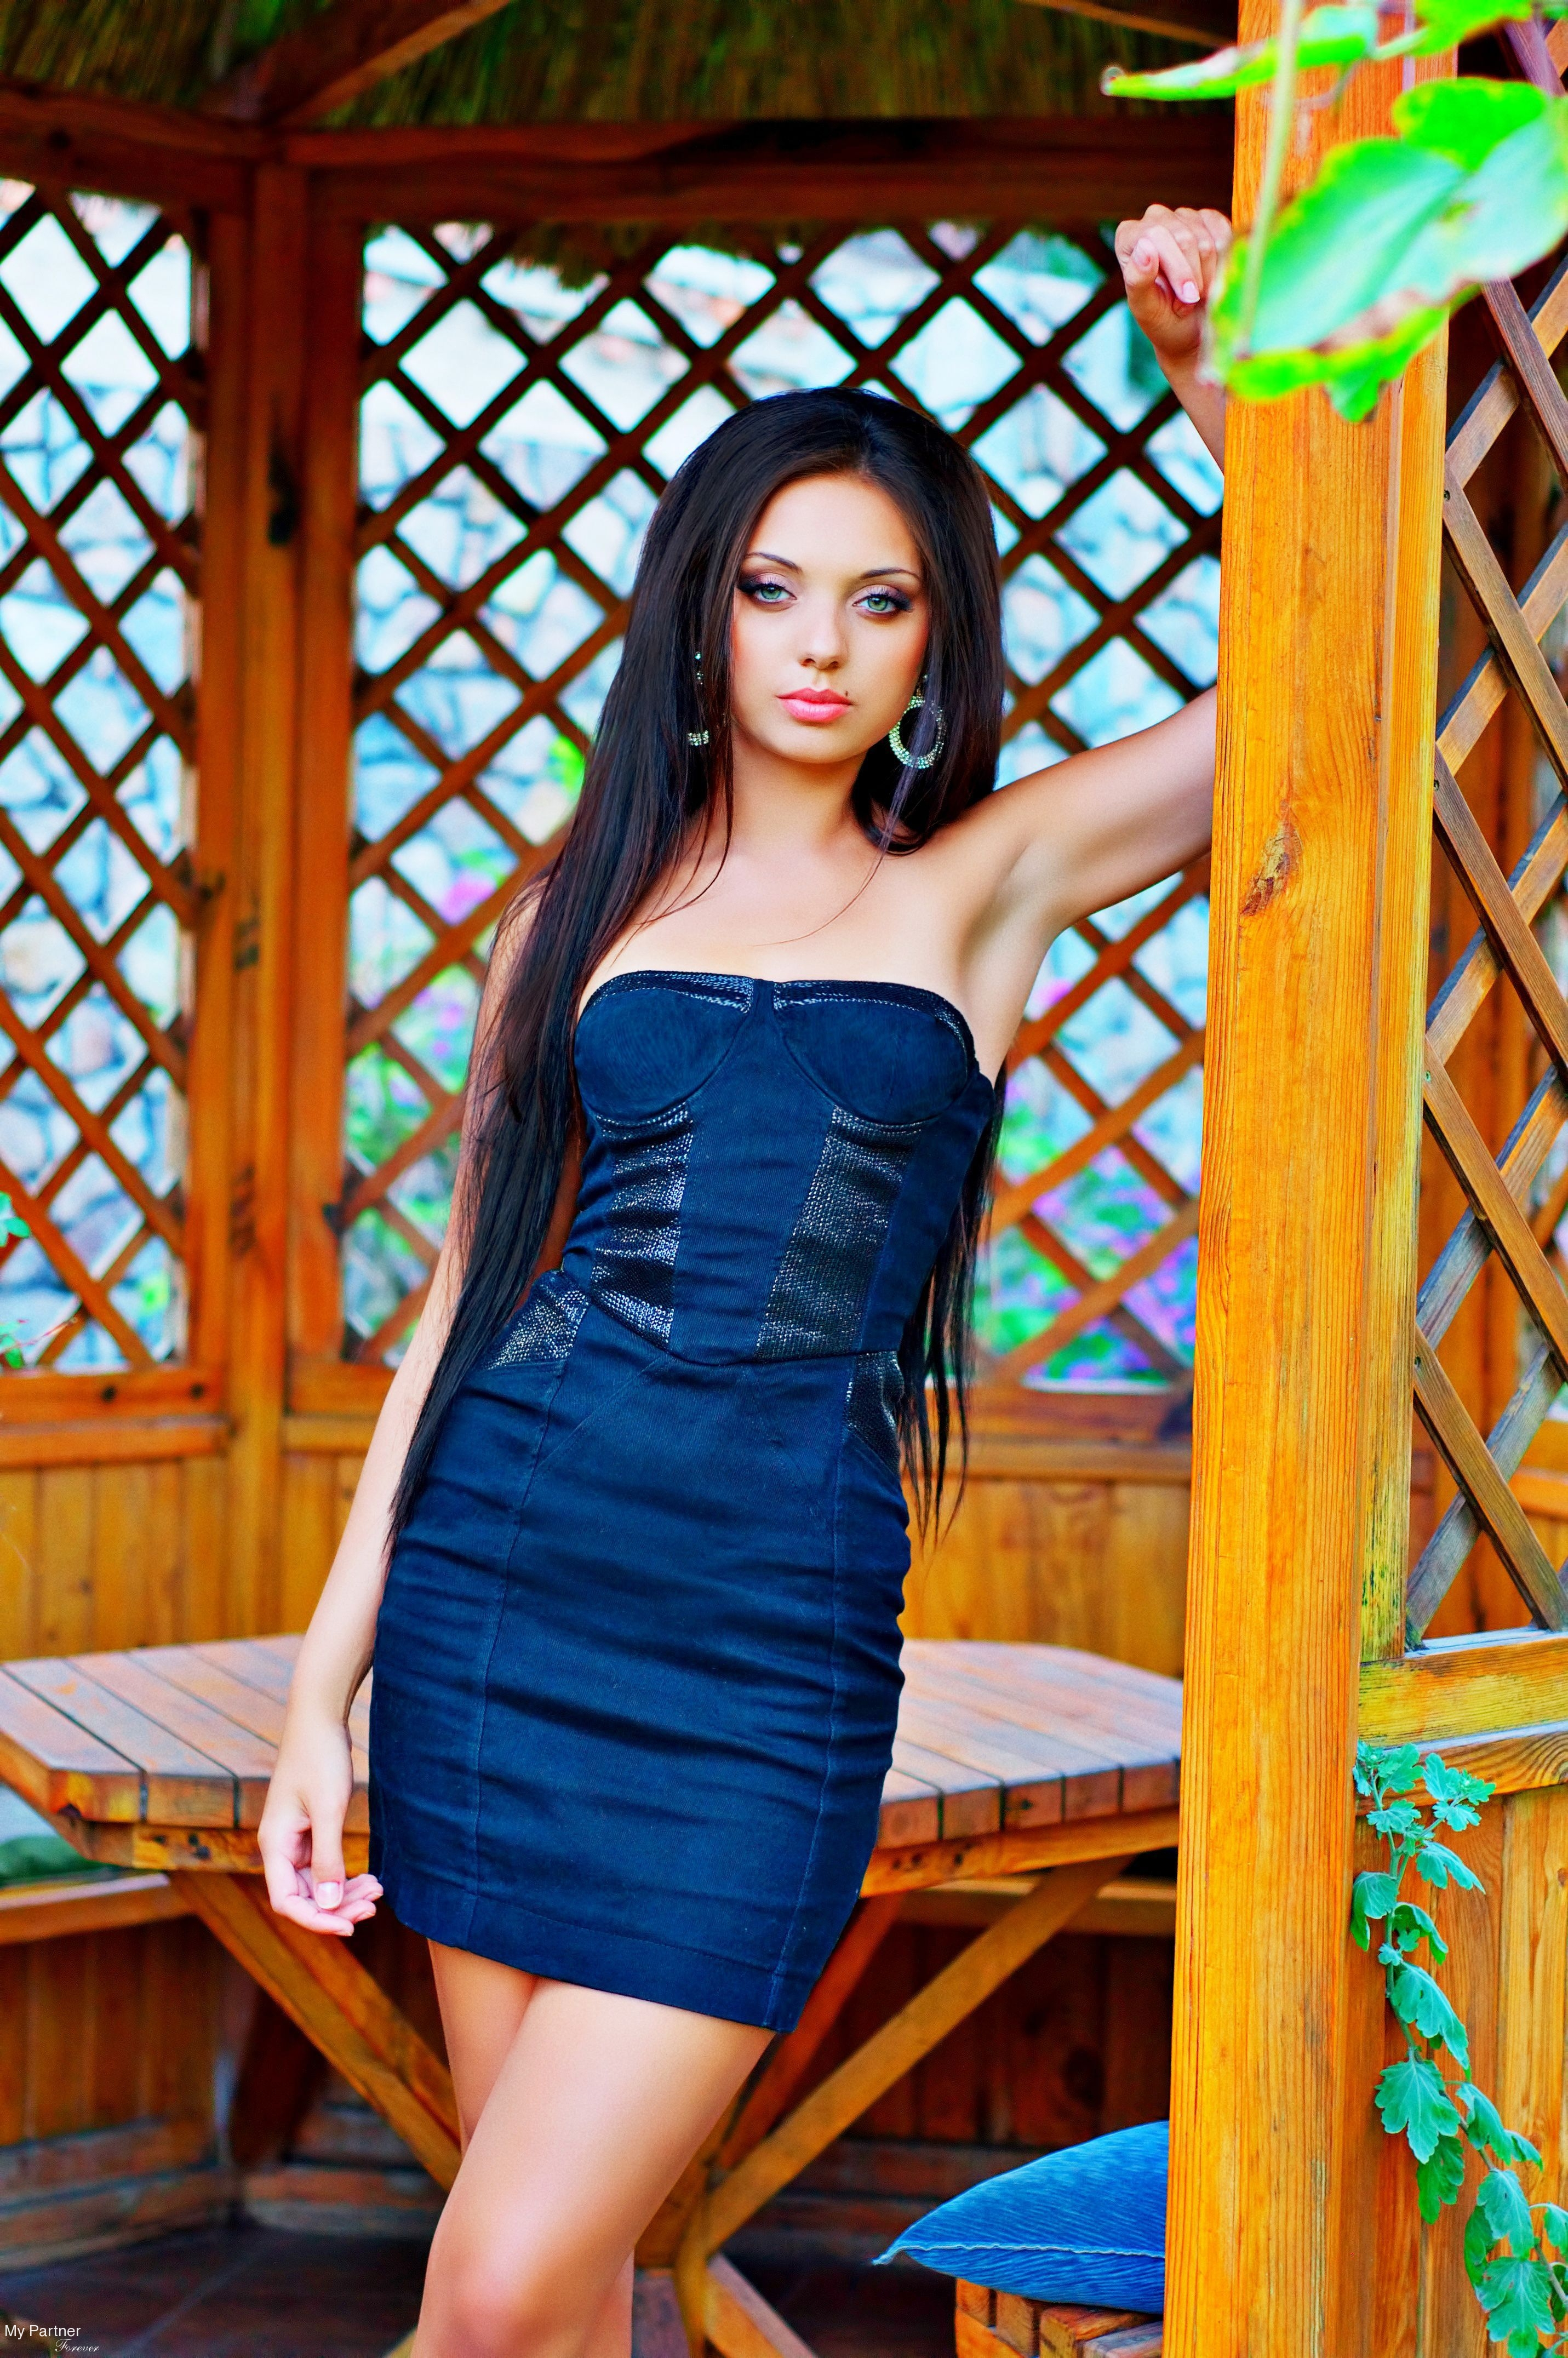 blanchard black personals Black dating network 595 likes 1 talking about this connect with 1000's of black singles it  enjoy this video with marie blanchard beautiful black.